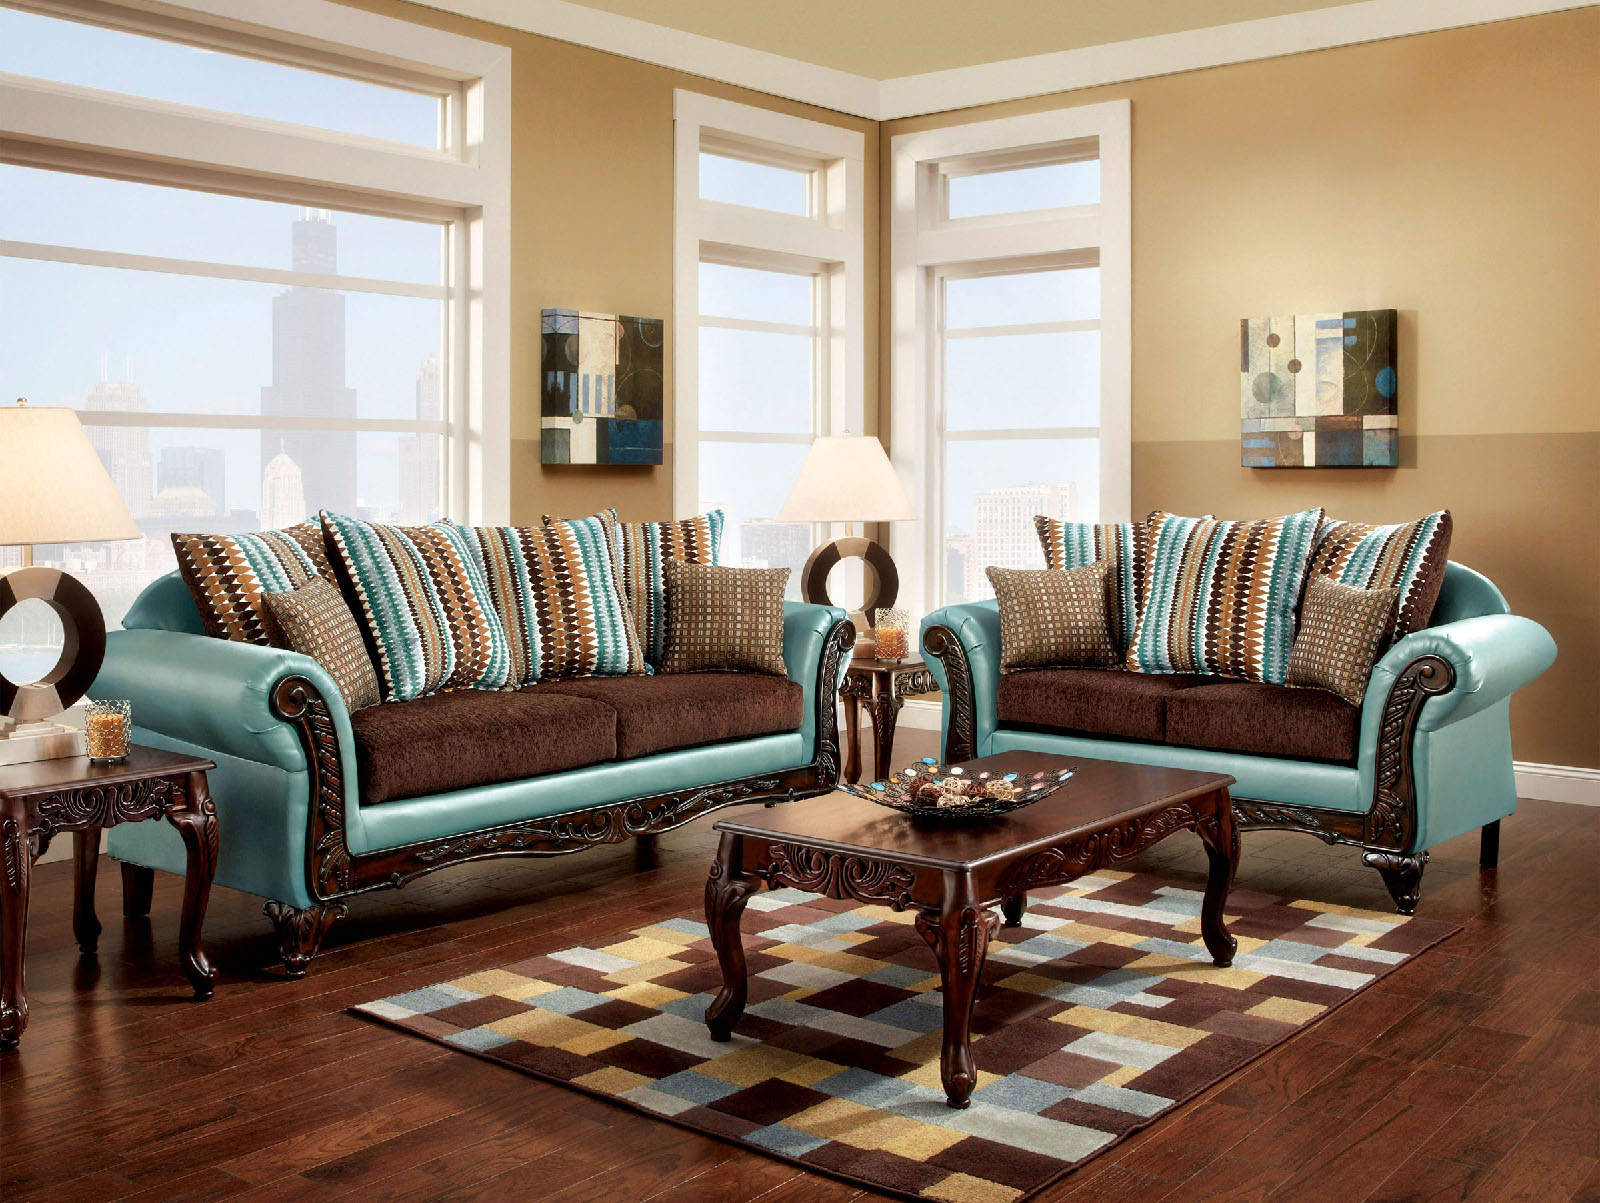 Mulligan 2pc Sofa Loveseat Set Foa Furniture Of America Mulligan 2pc Sofa Loveseat Set Available Online In Dallas Fort Worth Foa Furniture Of America Mulligan 2pc Sofa Loveseat Set Includes Mulligan Sofa 1 Mulligan Loveseat 1 Item Sku